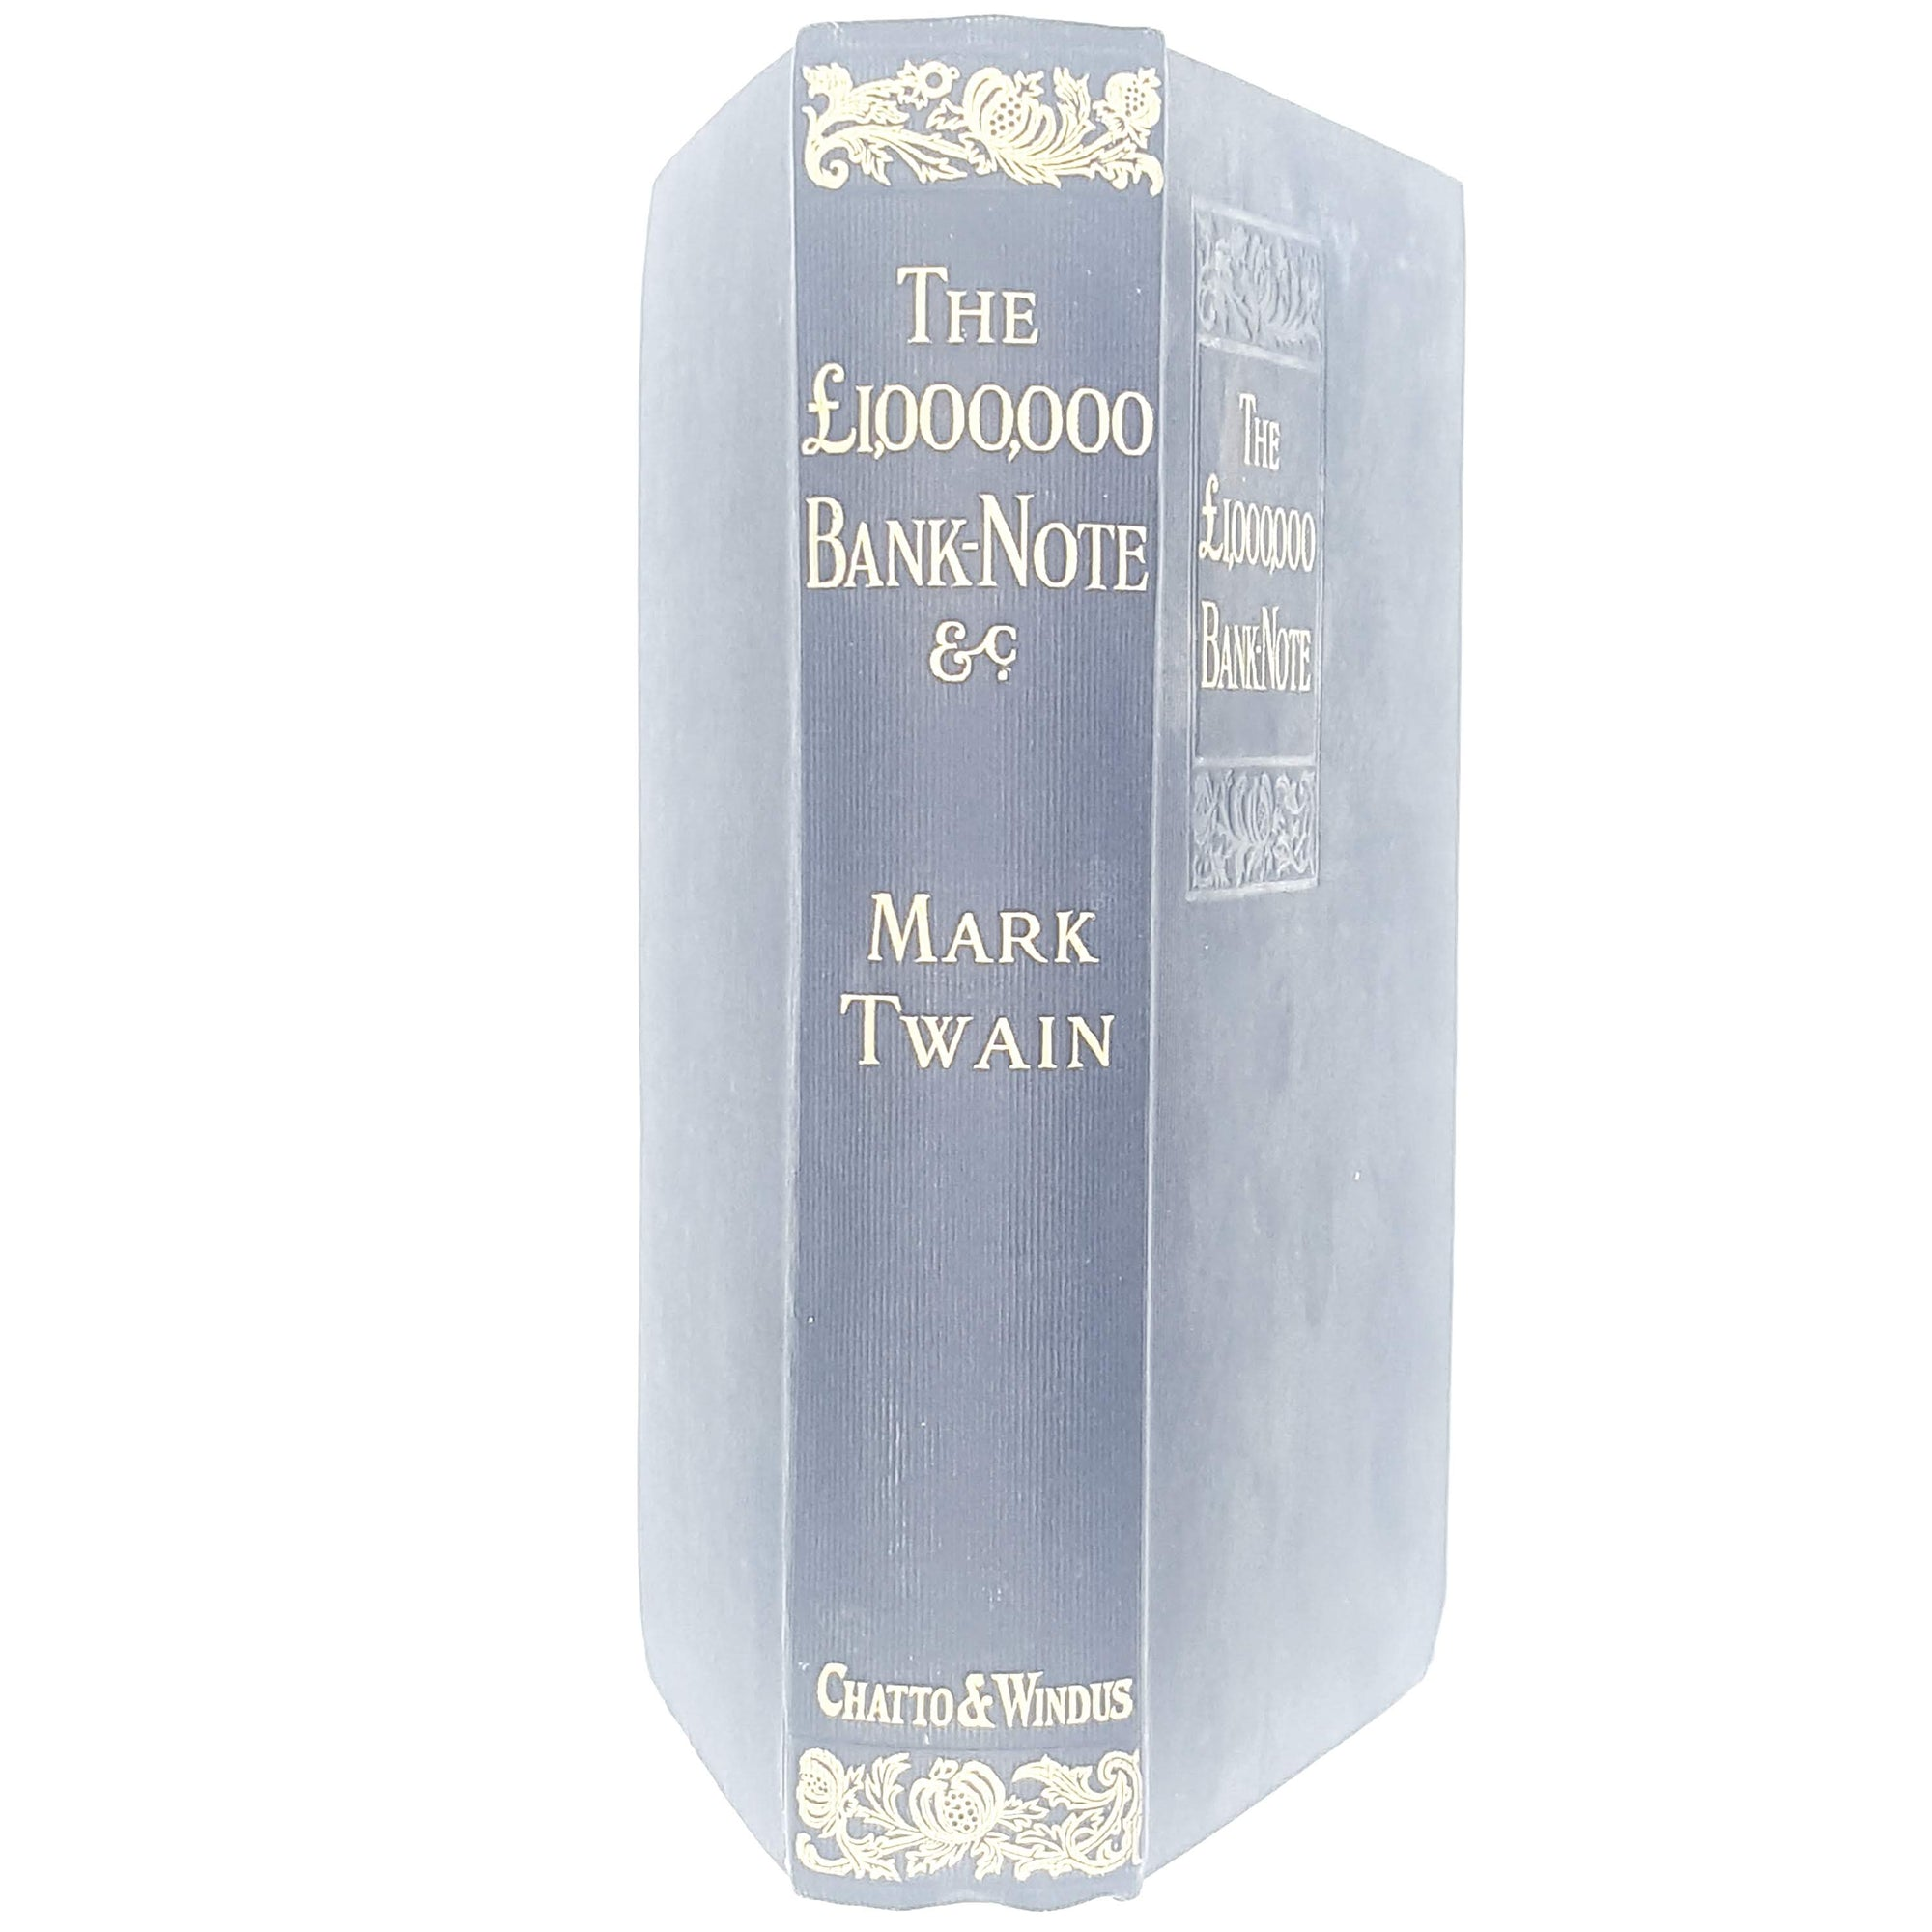 Mark Twain's The 1,000,000 Pound Bank Note and Other New Stories 1912